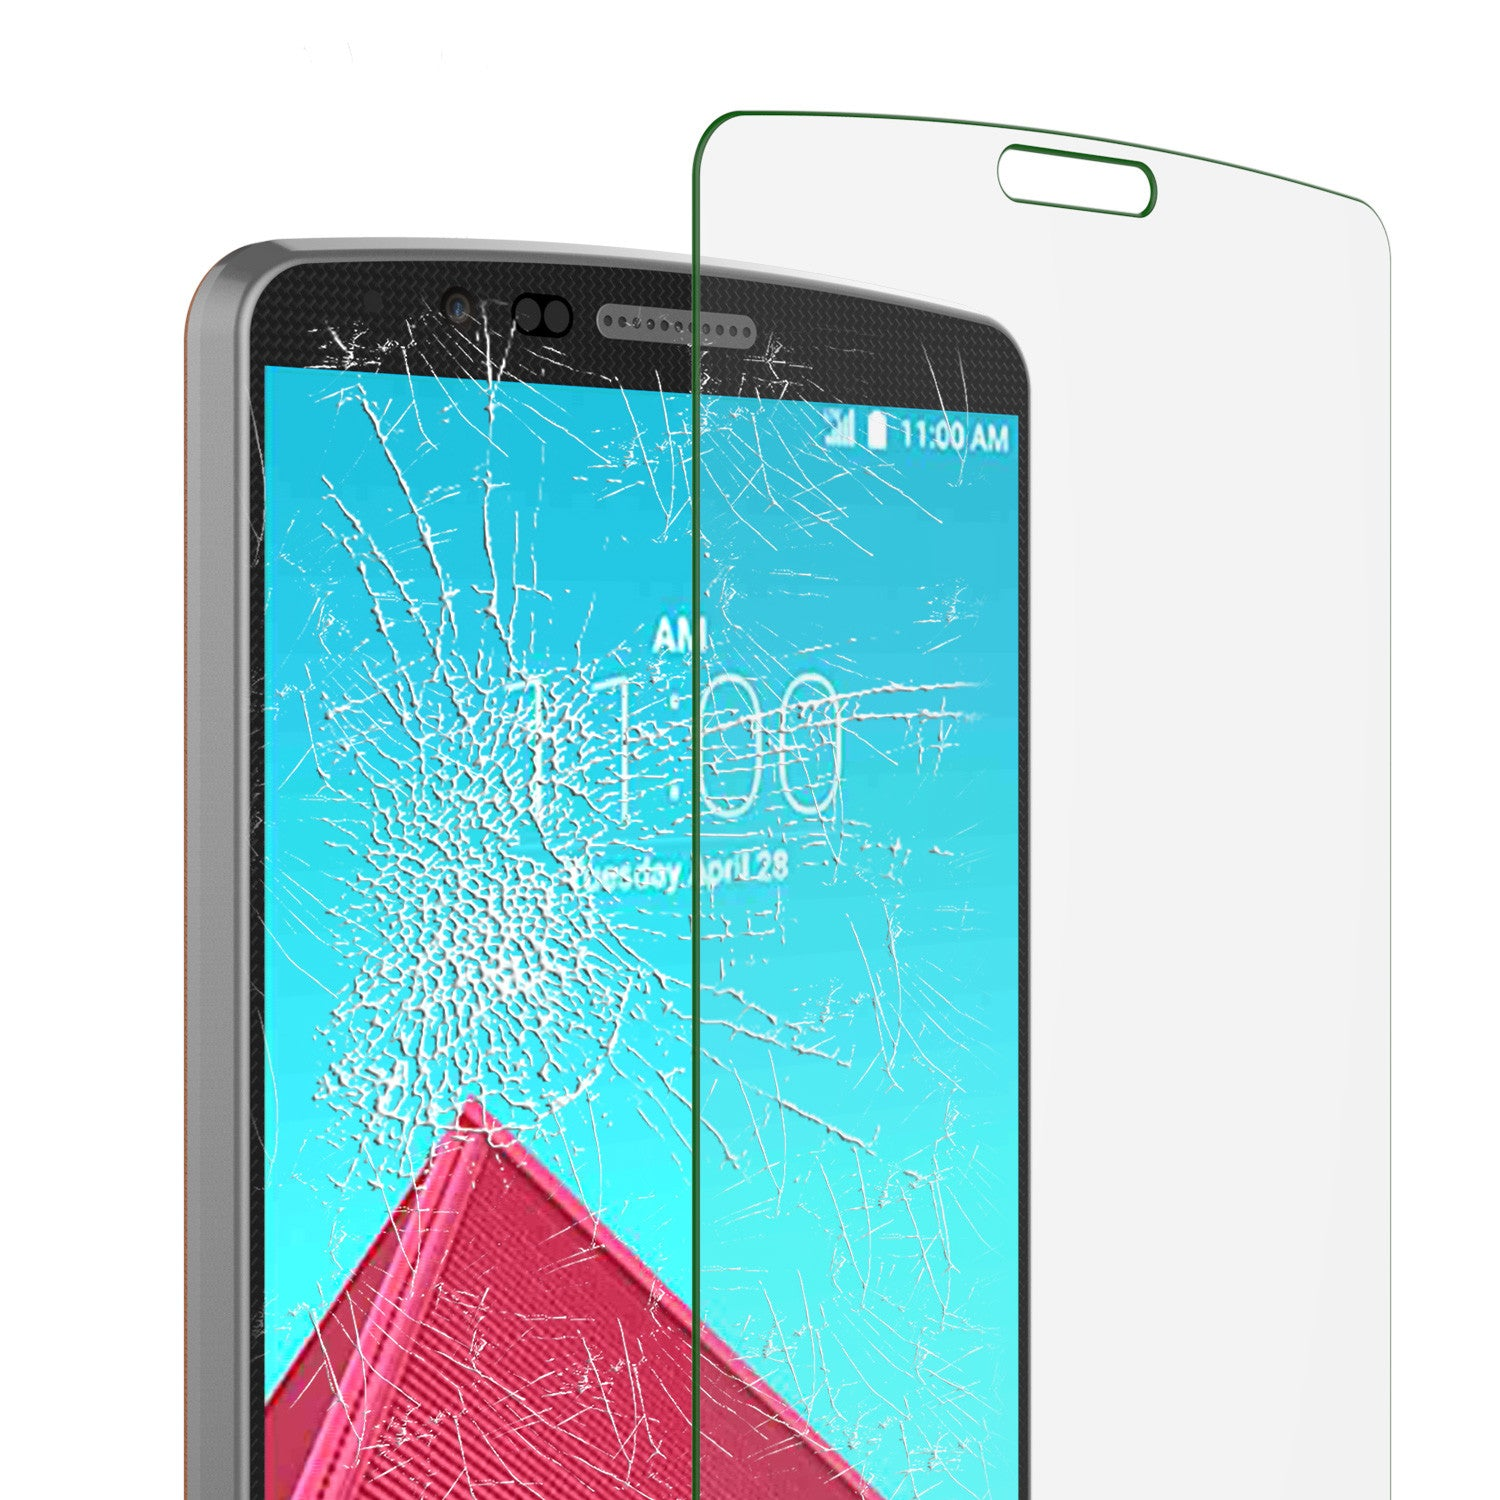 LG G4 Punkcase Glass SHIELD Tempered Glass Screen Protector 0.33mm Thick 9H Glass